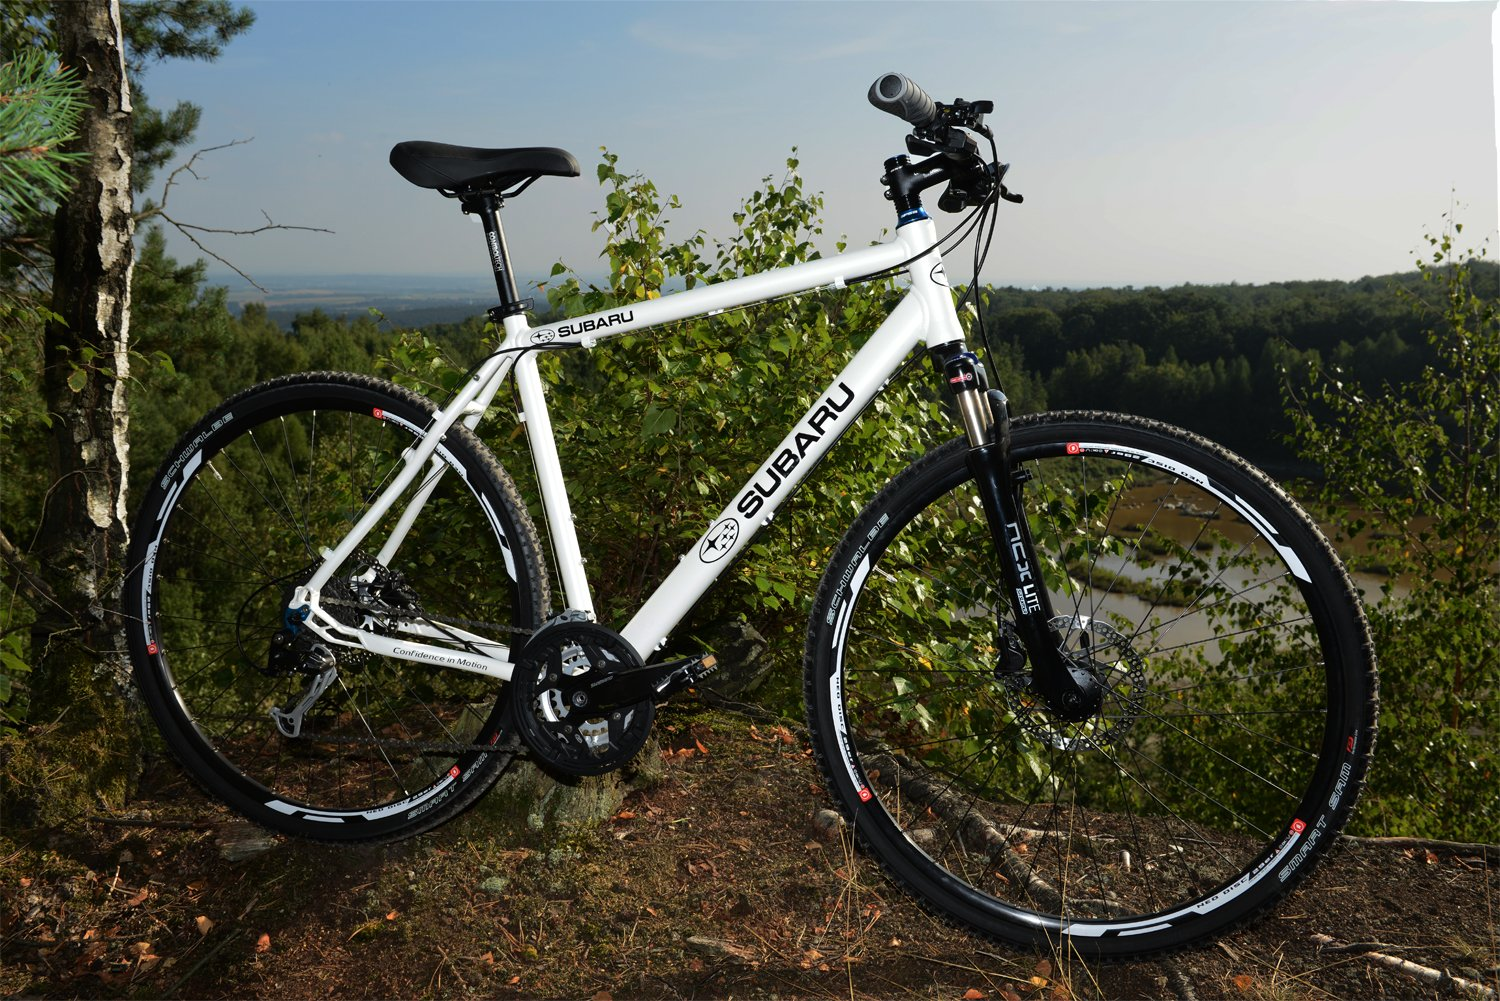 Subaru Trekking-Cross Bike